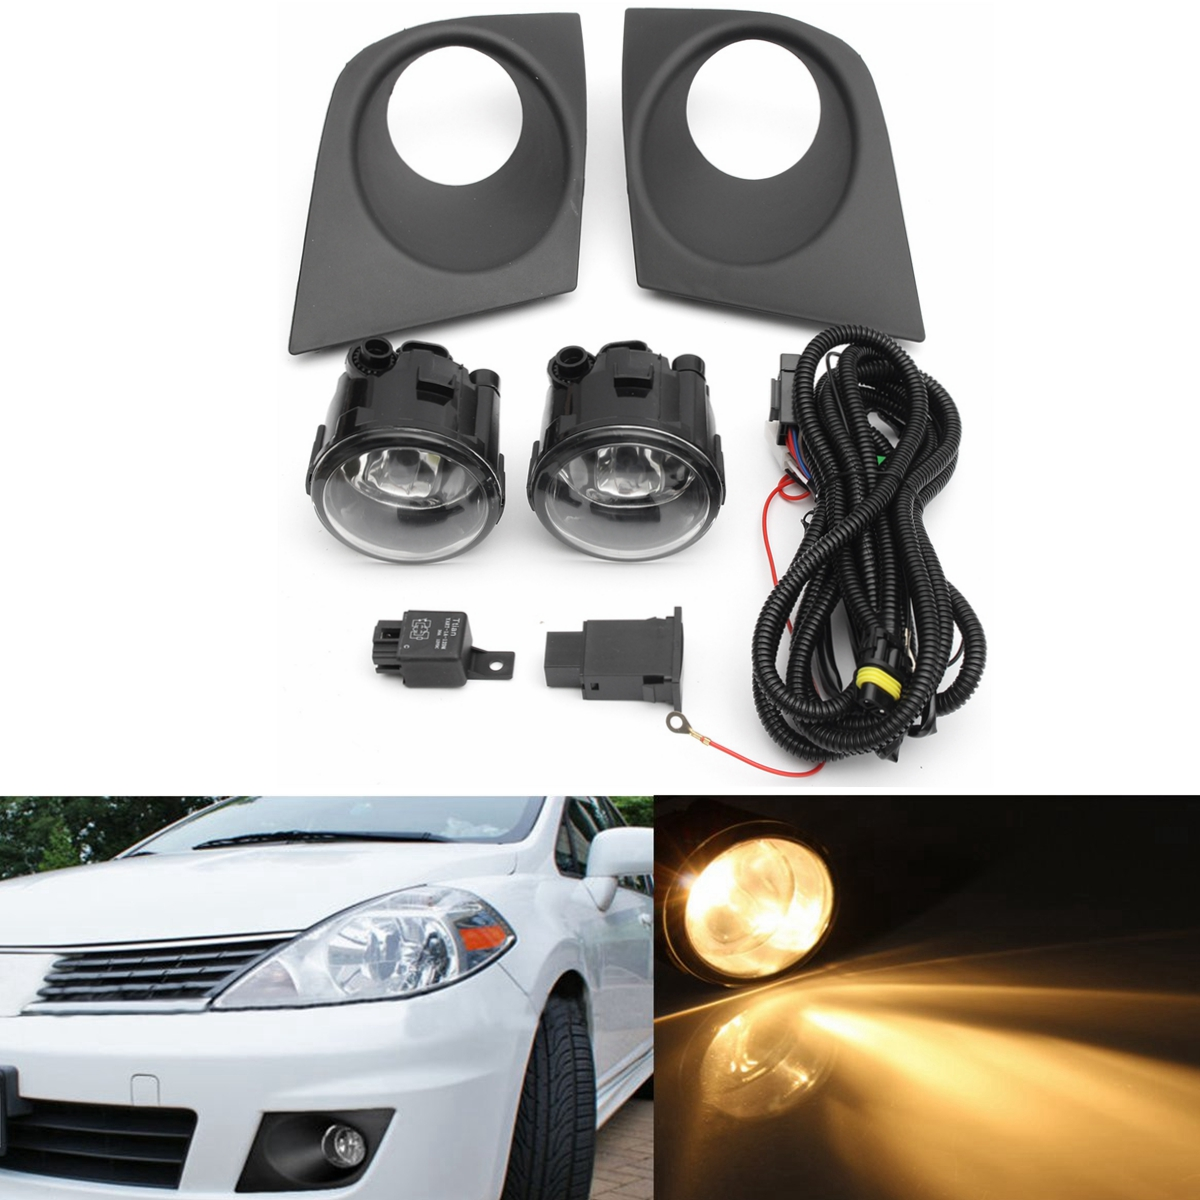 1 pair car front bumper grille h11 fog light bulb with switch wire for nissan versa 2007 2008 2009 2010 2011 fog lamps [ 1200 x 1200 Pixel ]